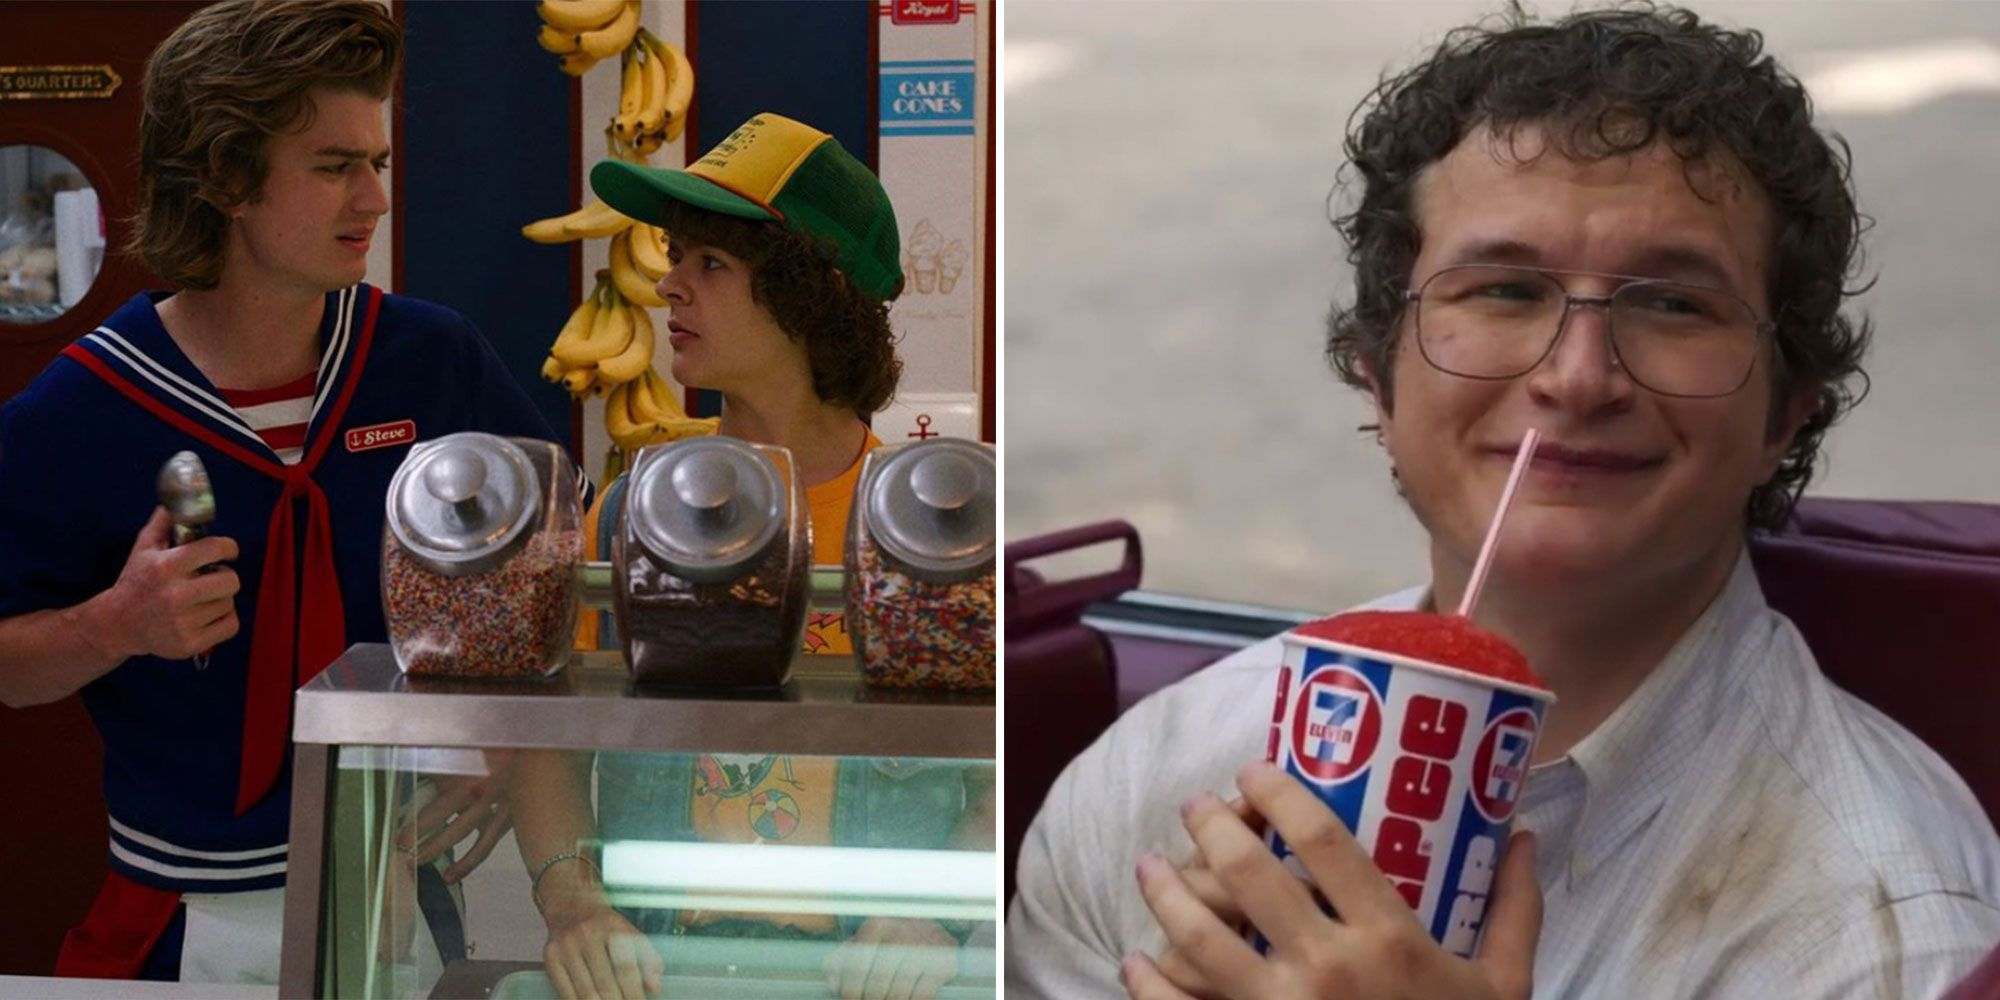 Every Food Reference In Stranger Things Season 3: Burger